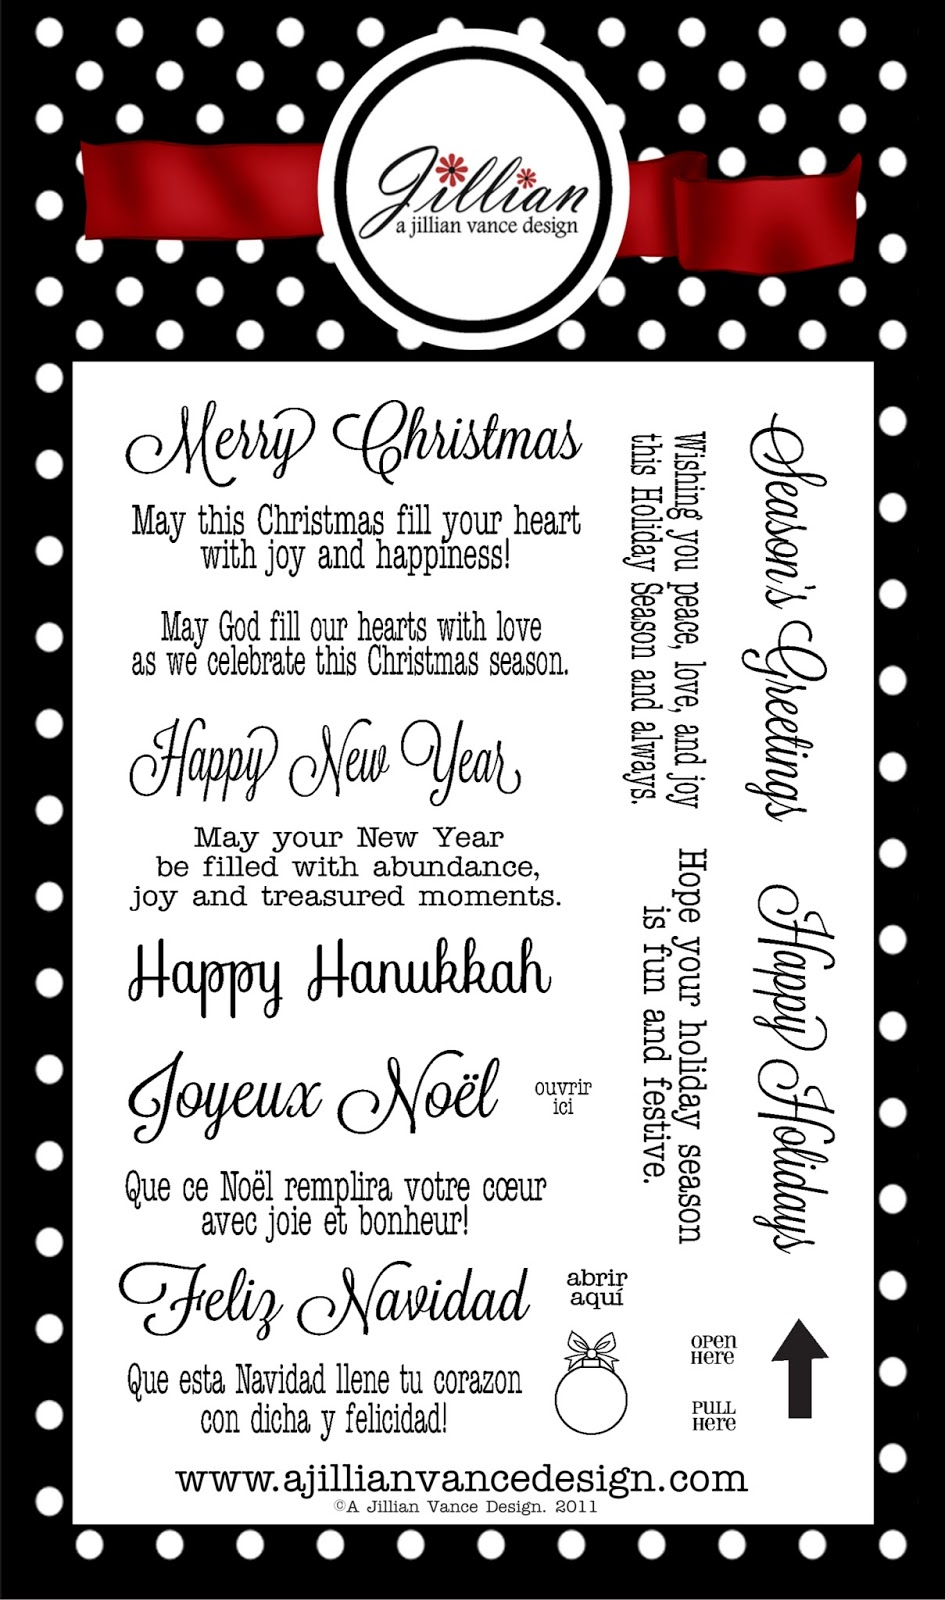 http://stores.ajillianvancedesign.com/the-holiday-zipper-stamp-set/